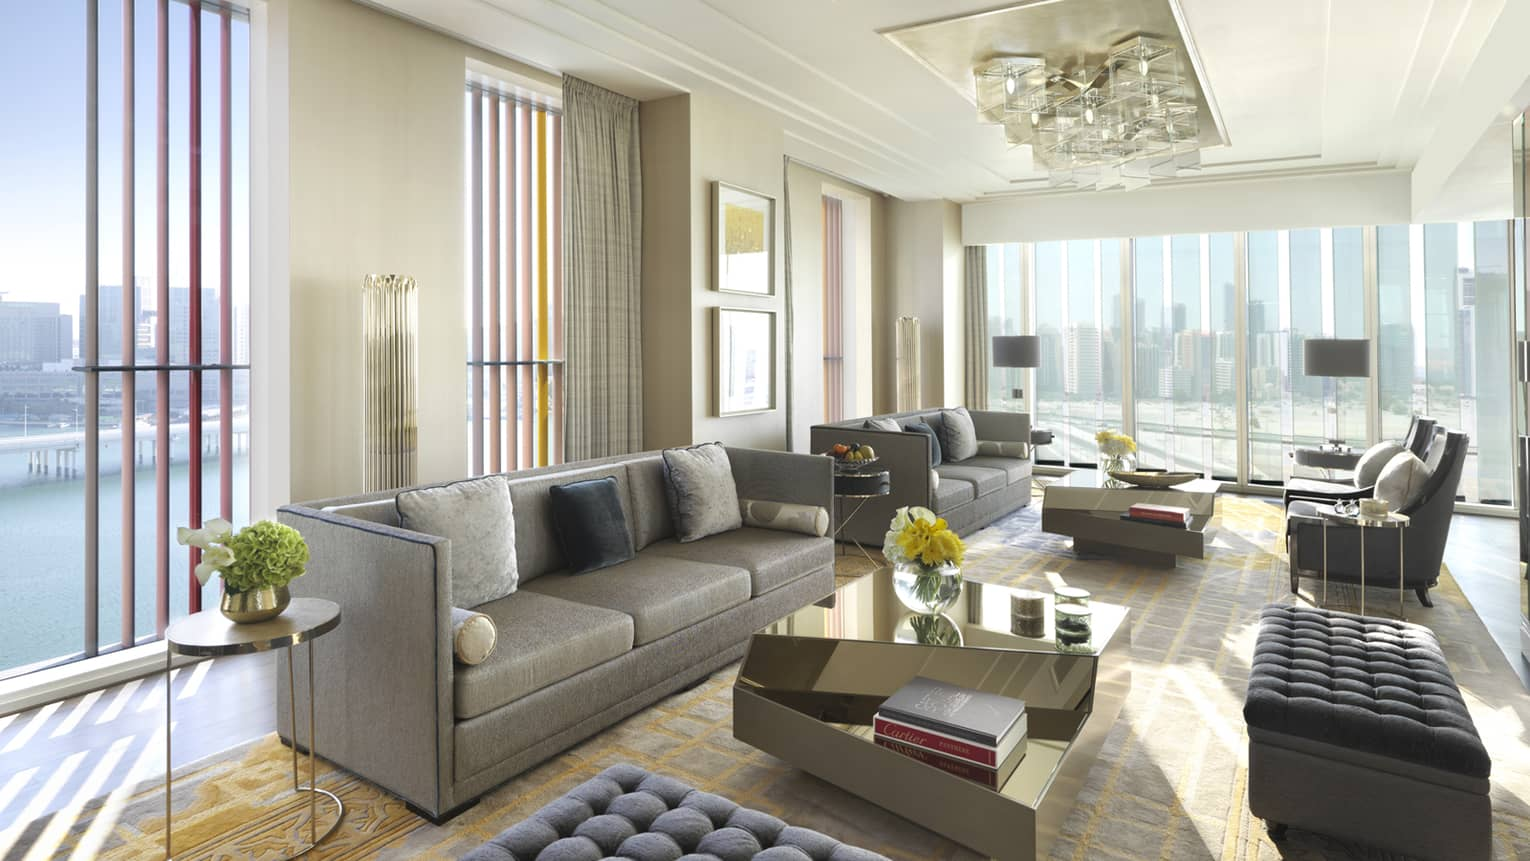 Presidential Suite with grey sofas and ottomans, floor-to-ceiling corner windows with sunny Gulf views